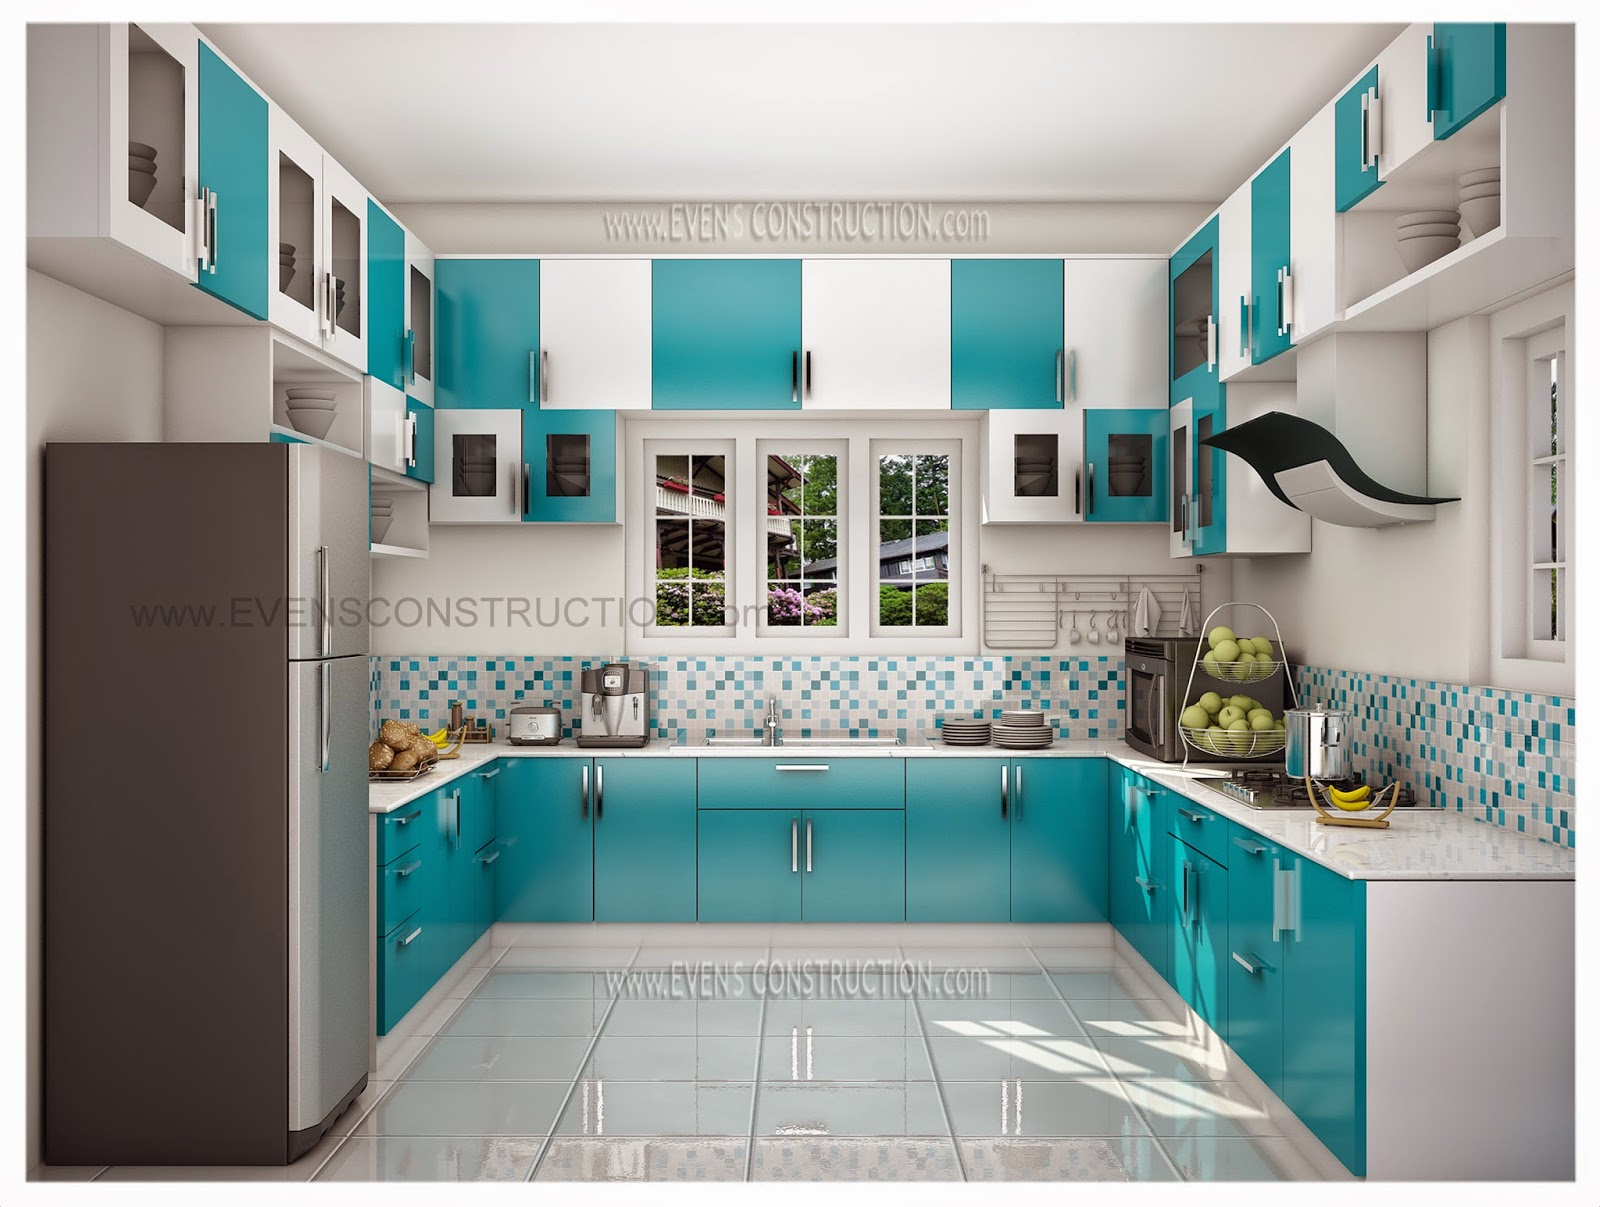 Evens Construction Pvt Ltd Beautiful Kerala Kitchen